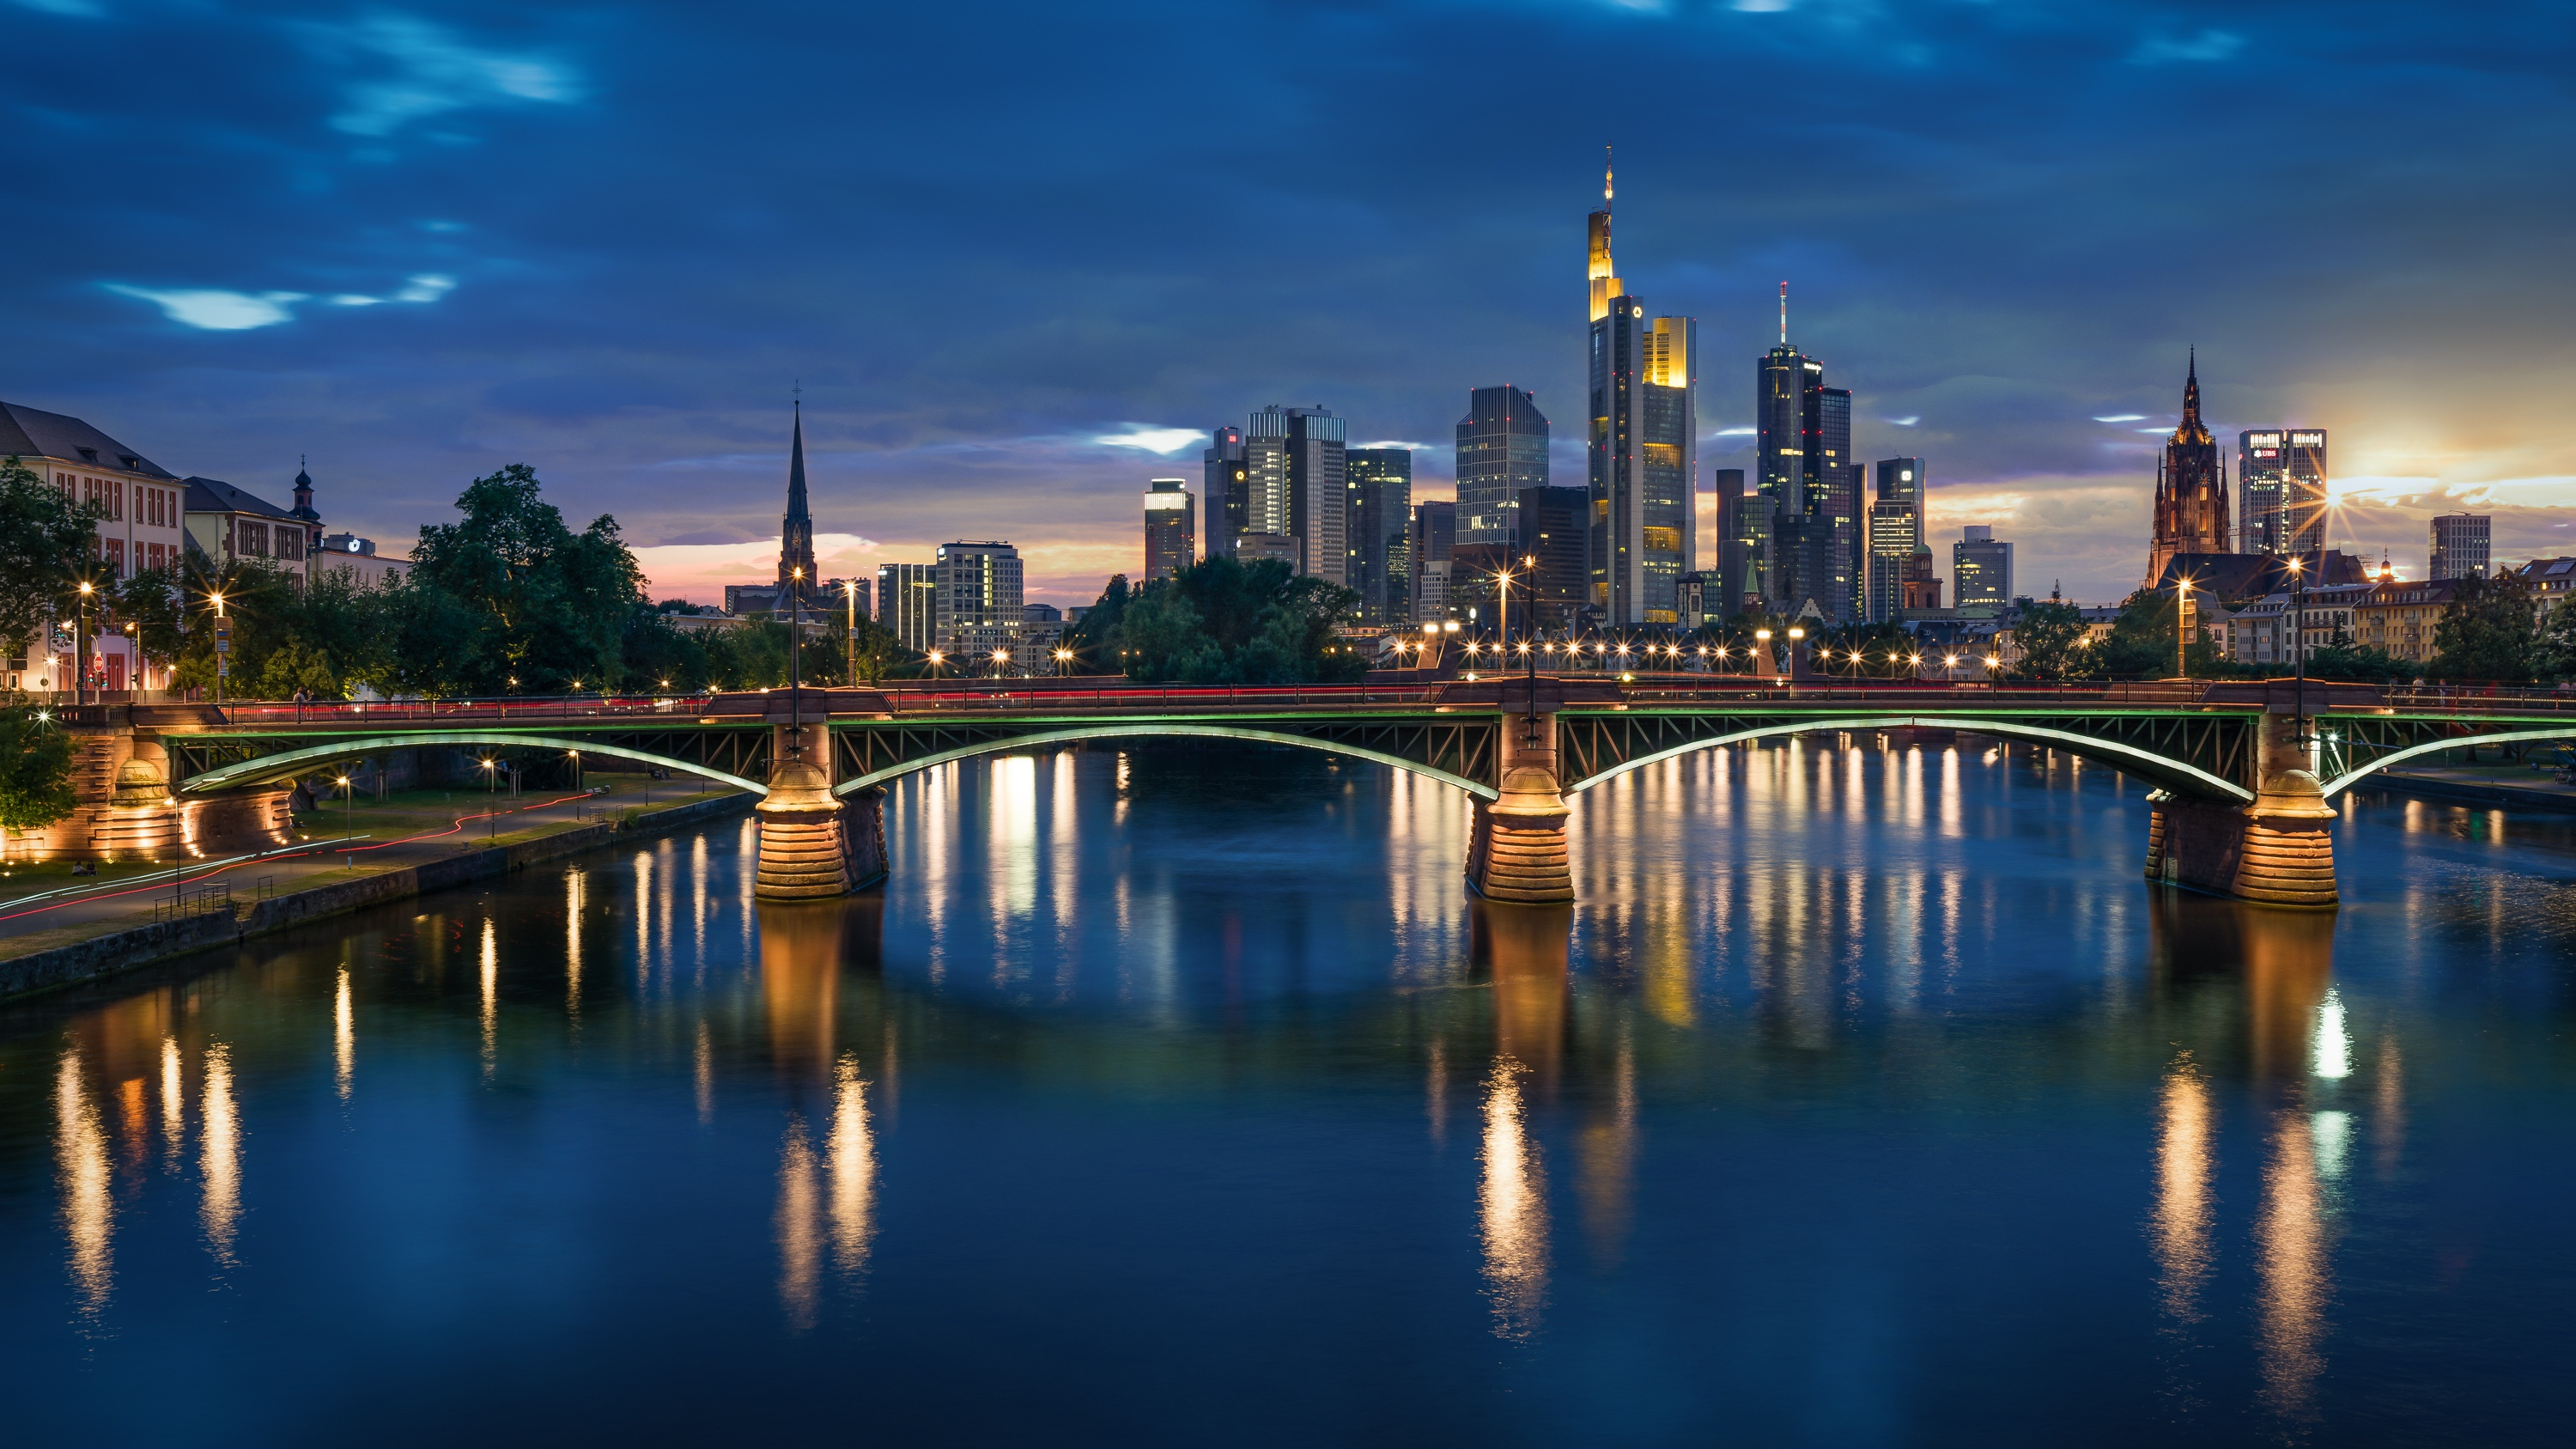 Bridge City Frankfurt Germany Night River 3000x1687